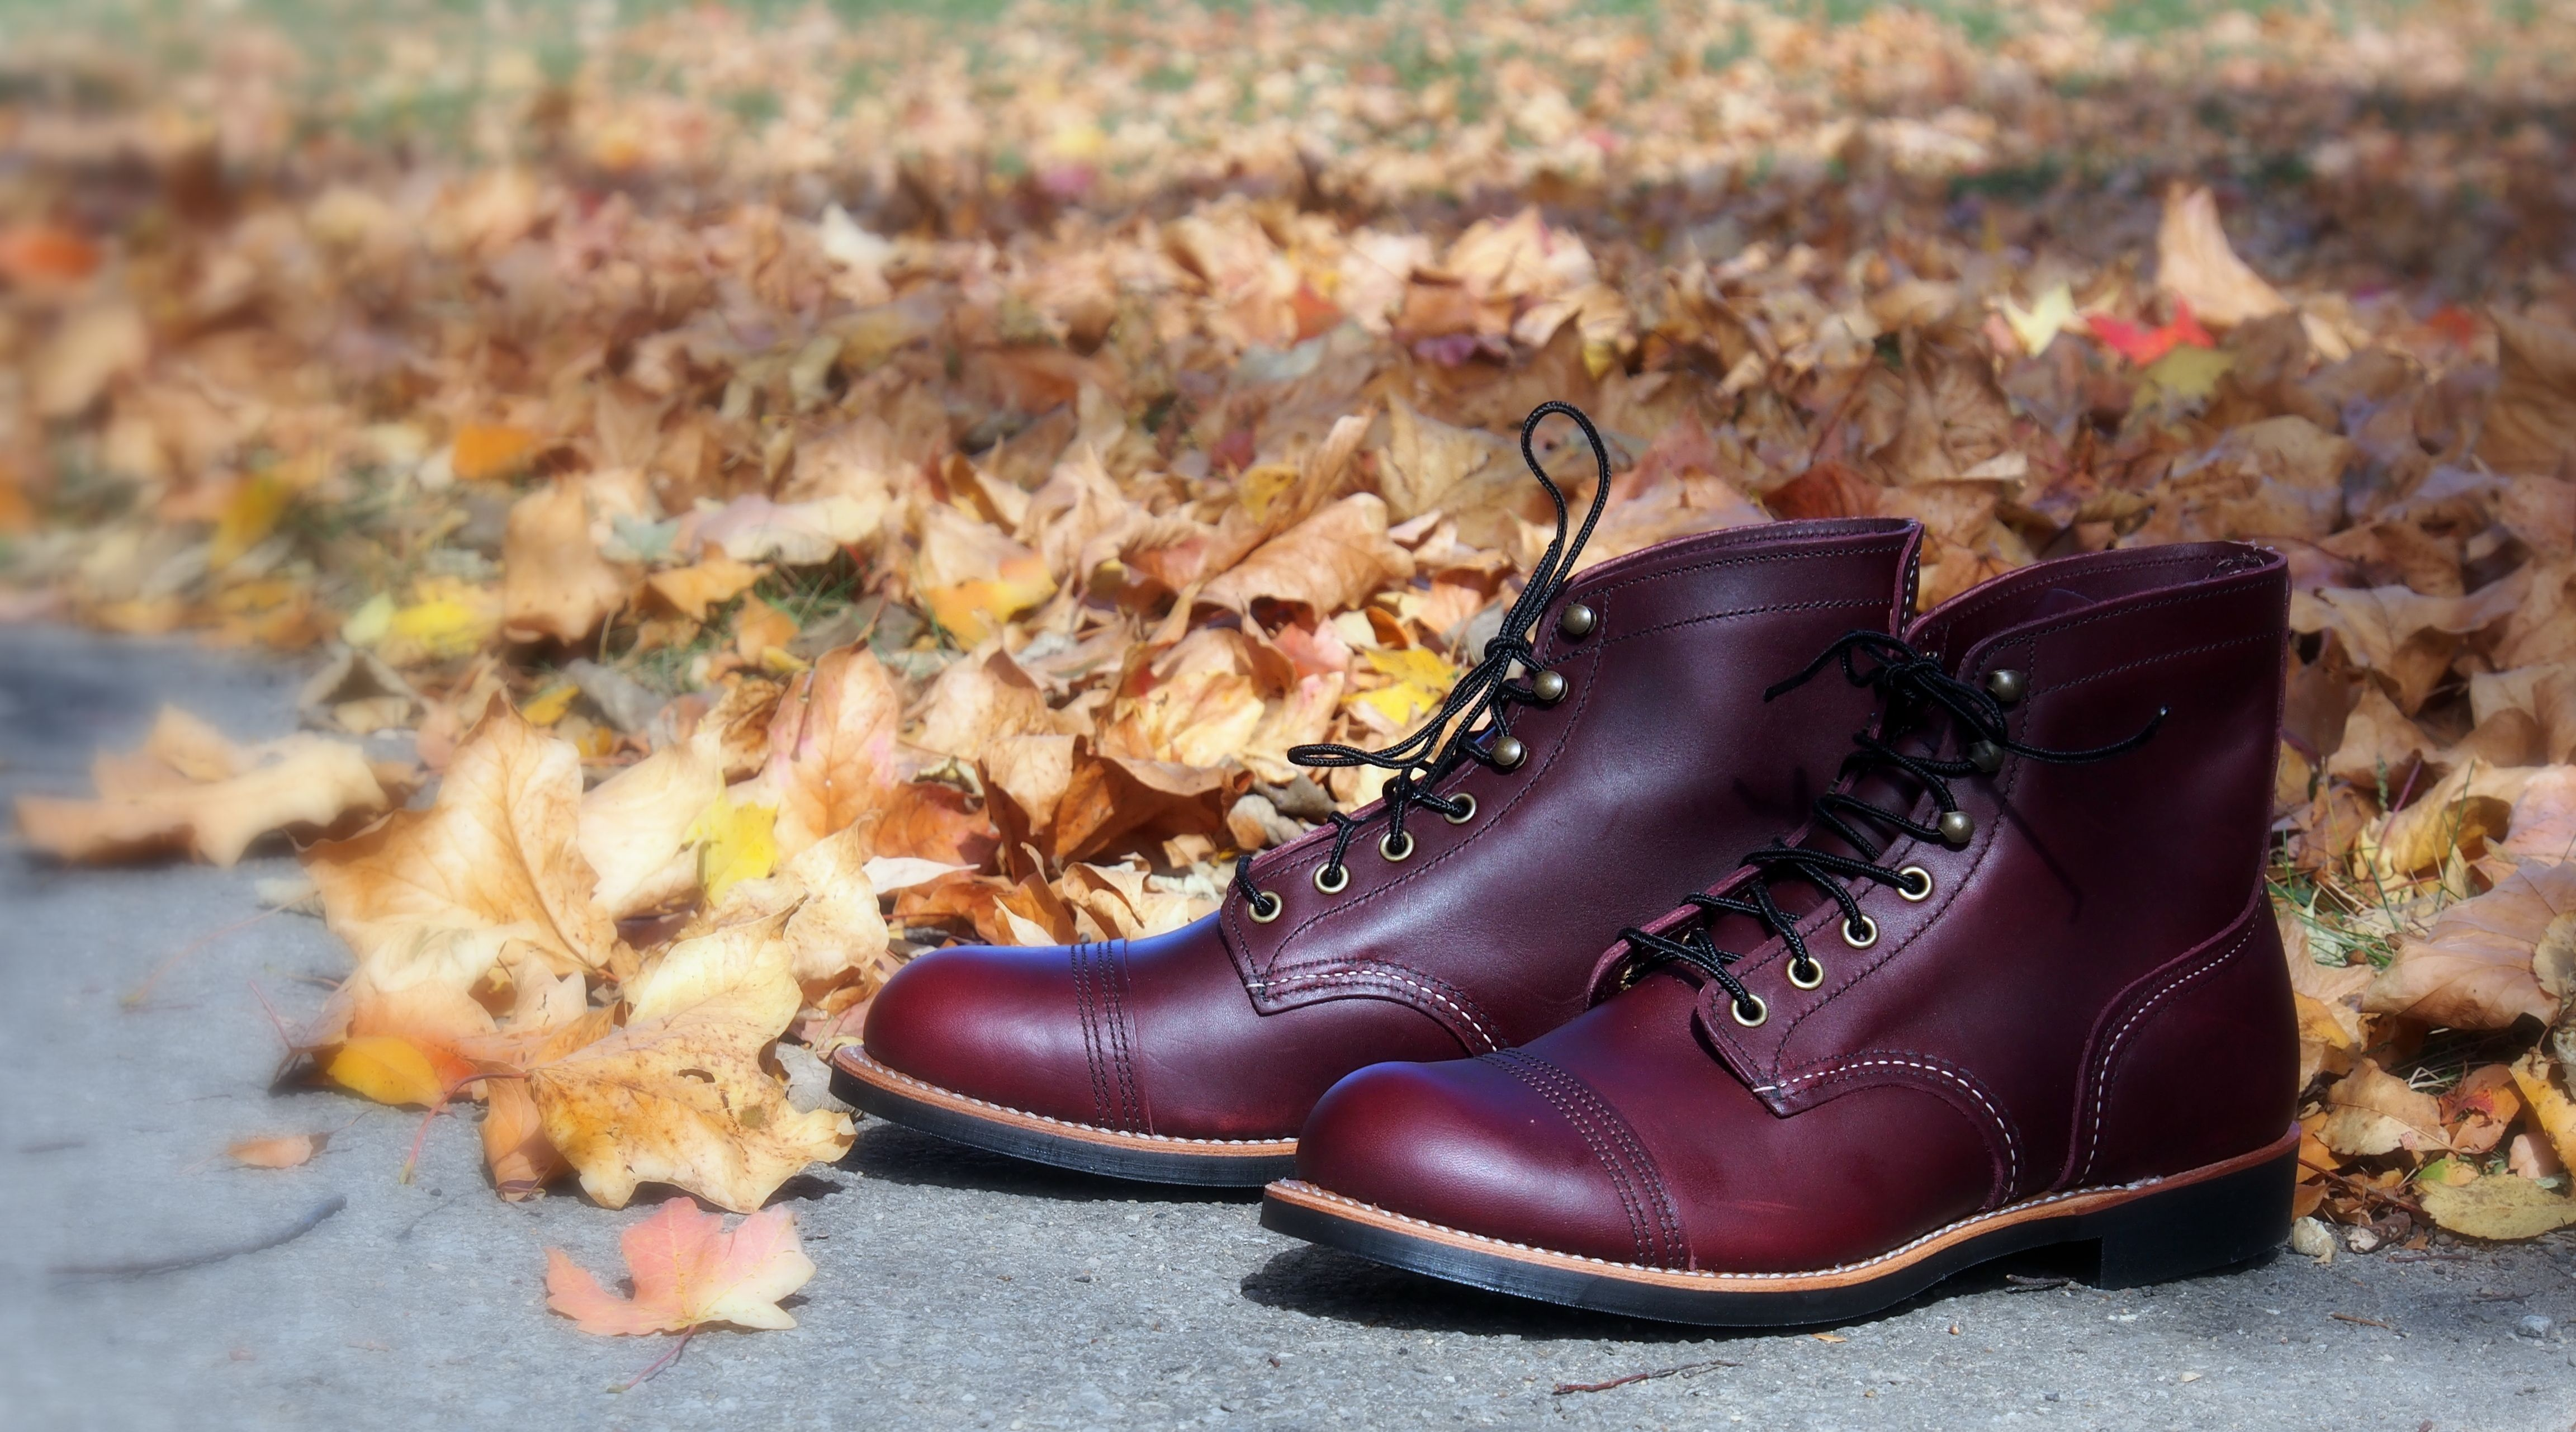 91ab317c03c New Red Wing Oxblood Mesa Iron Rangers 8119! Get it now at www ...